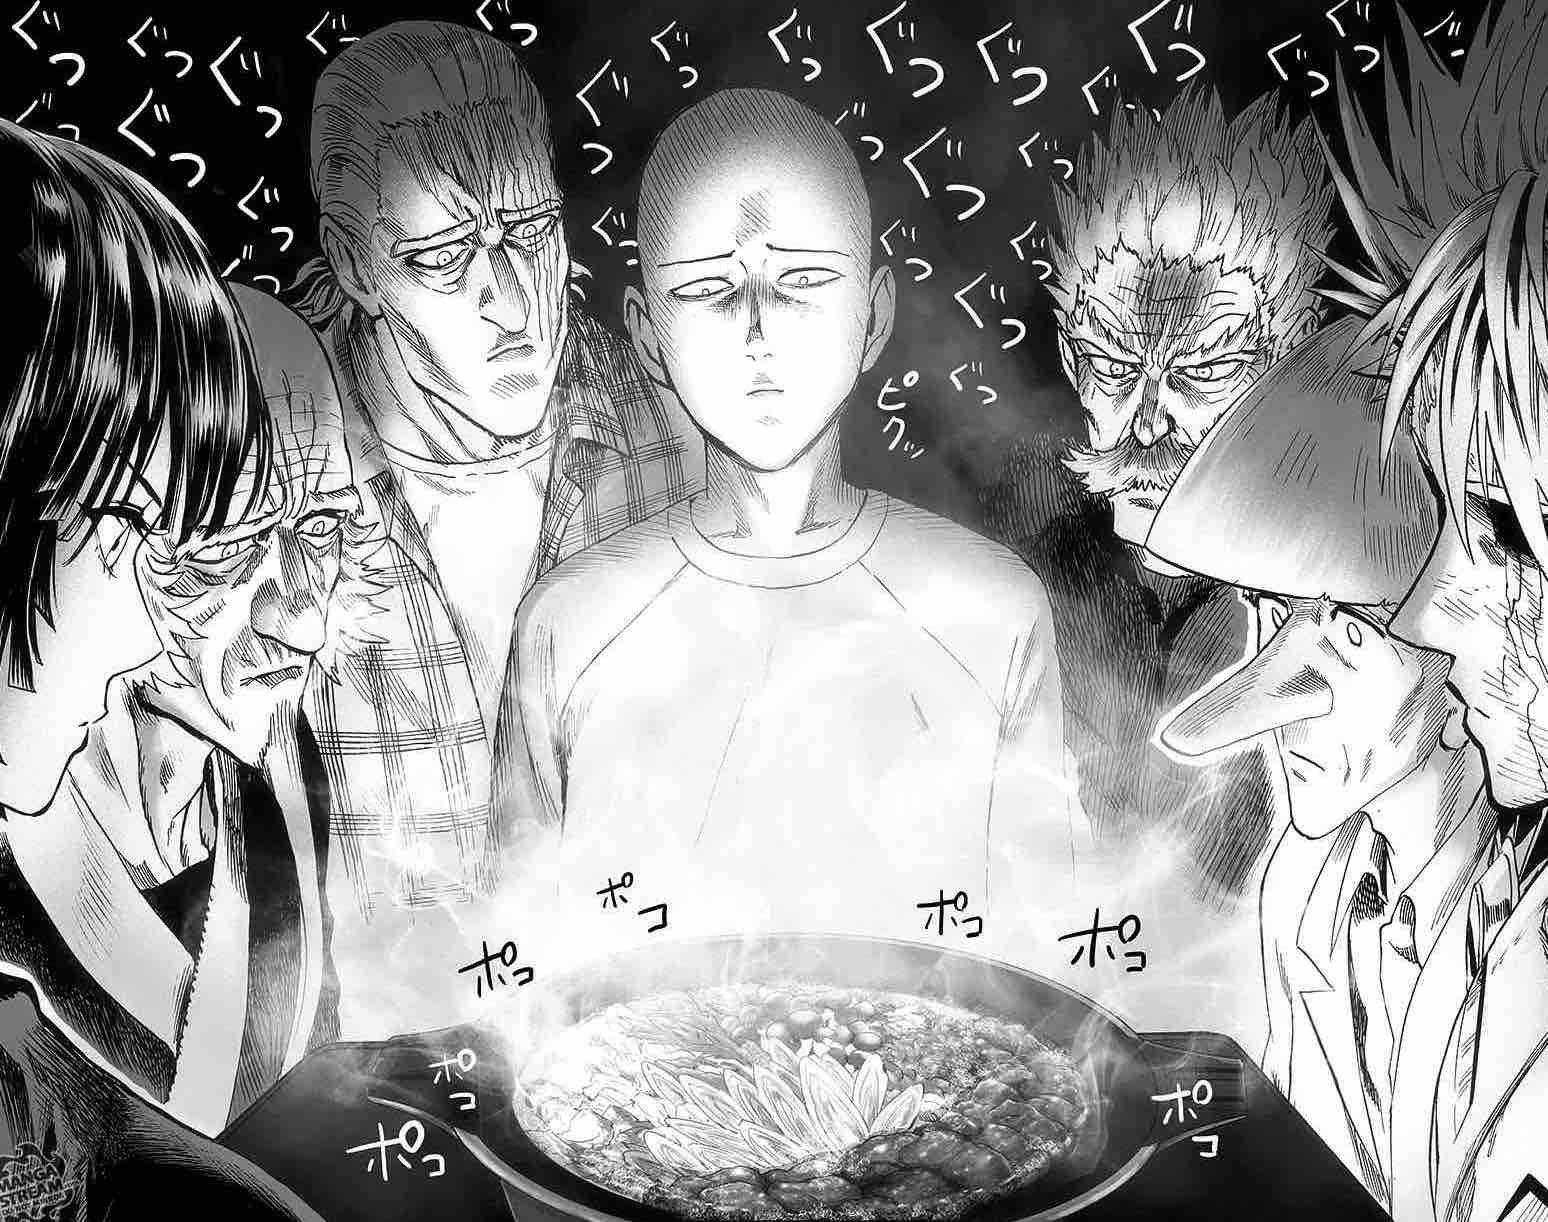 Onepunch Man Chapter 137 is now out #MyMangaListorg